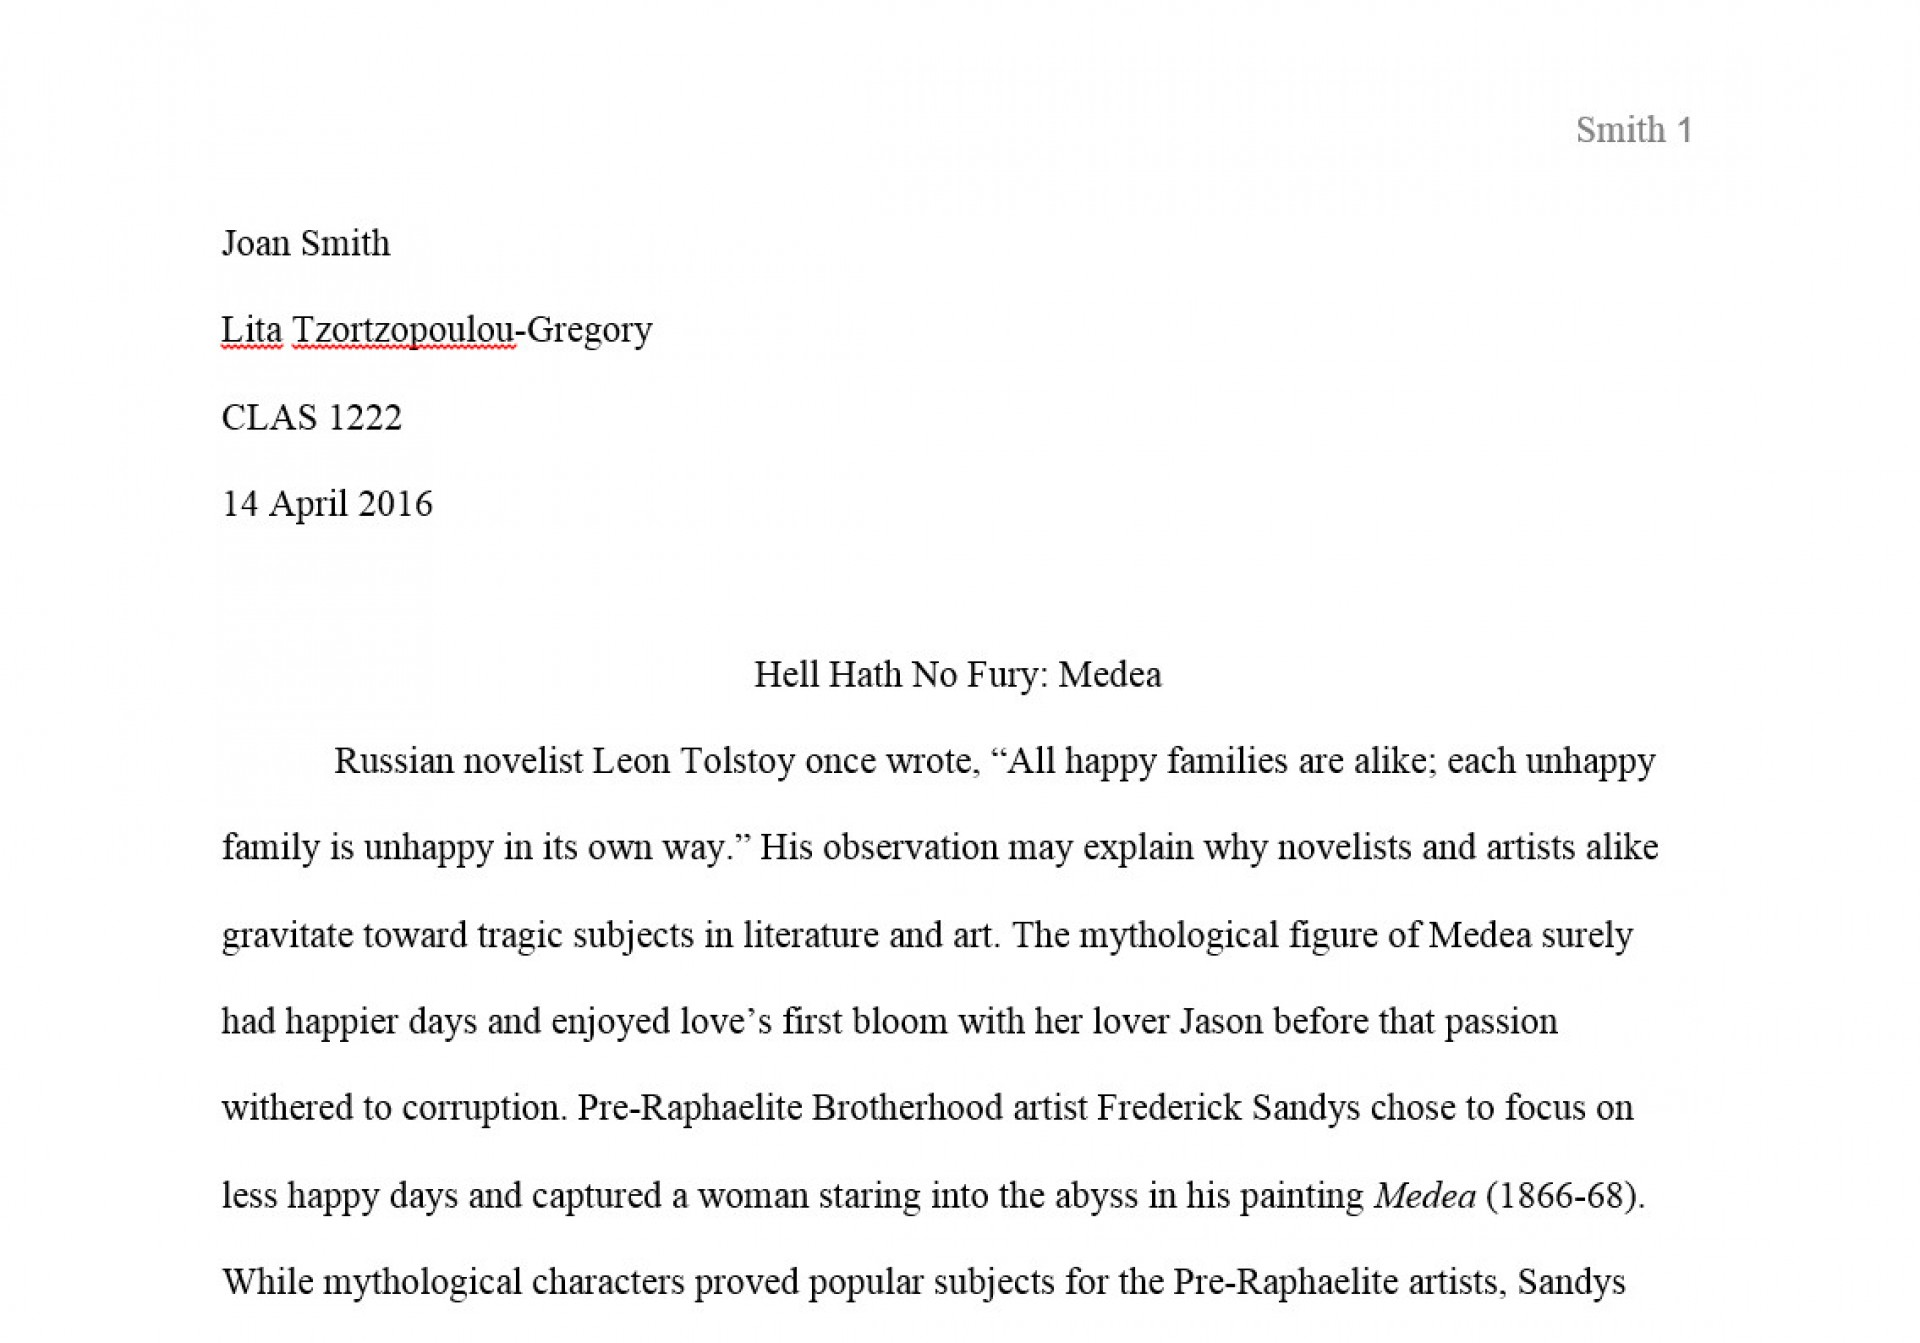 009 Samplefirstpagemla Mla Research Paper Citation Imposing Format In Text Citing A 1920